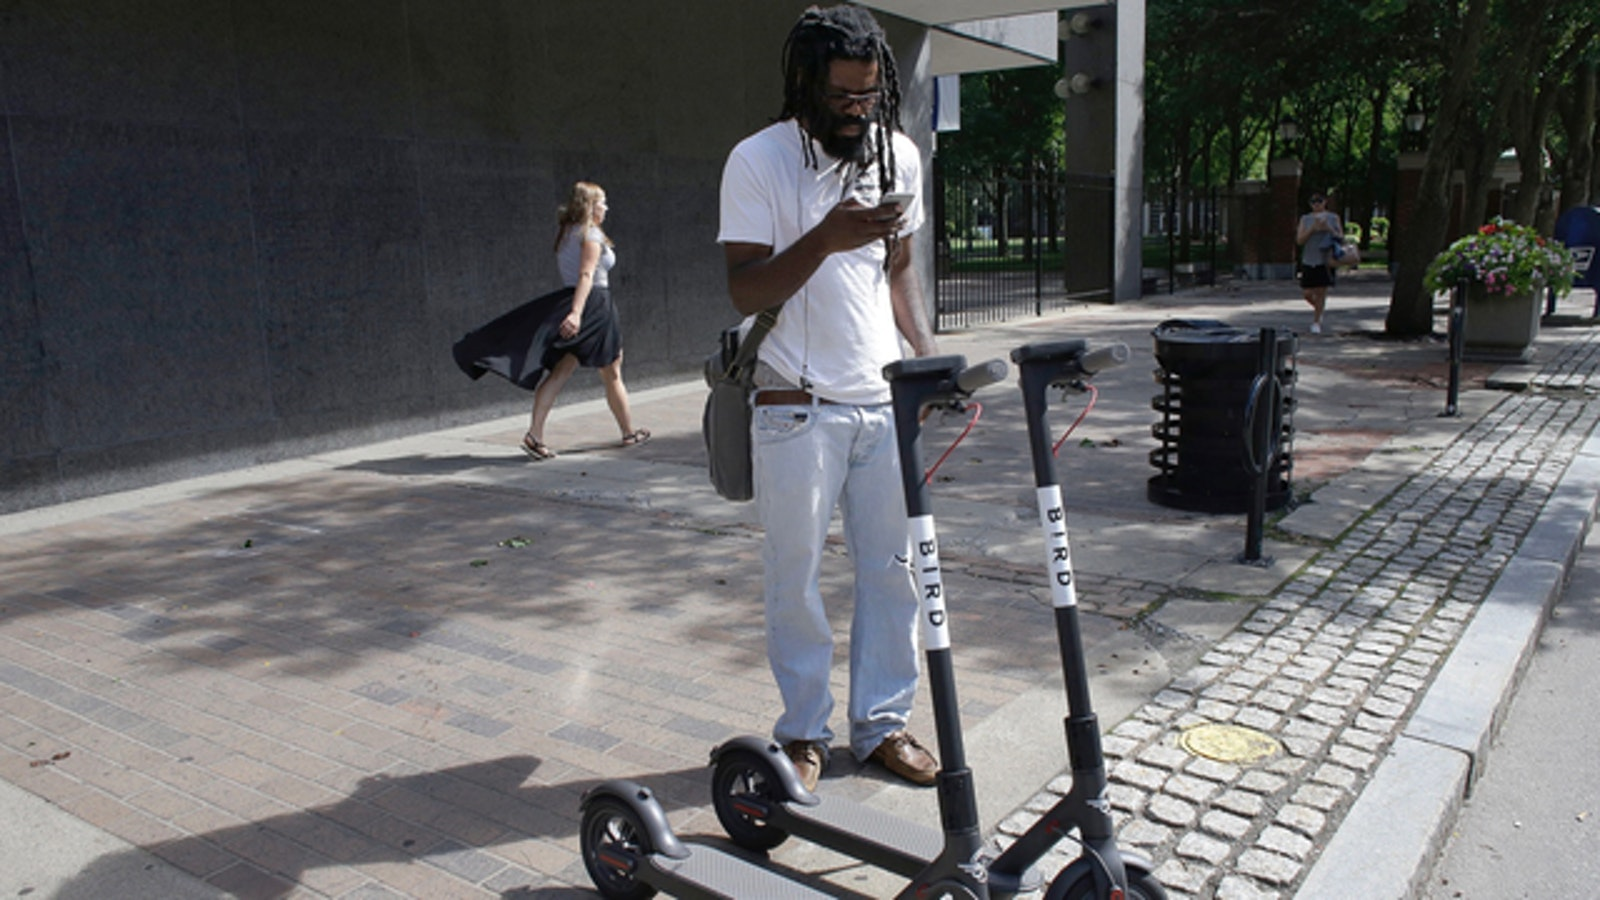 A man prepared to ride a Bird scooter in Providence, R.I., in July. Photo: AP